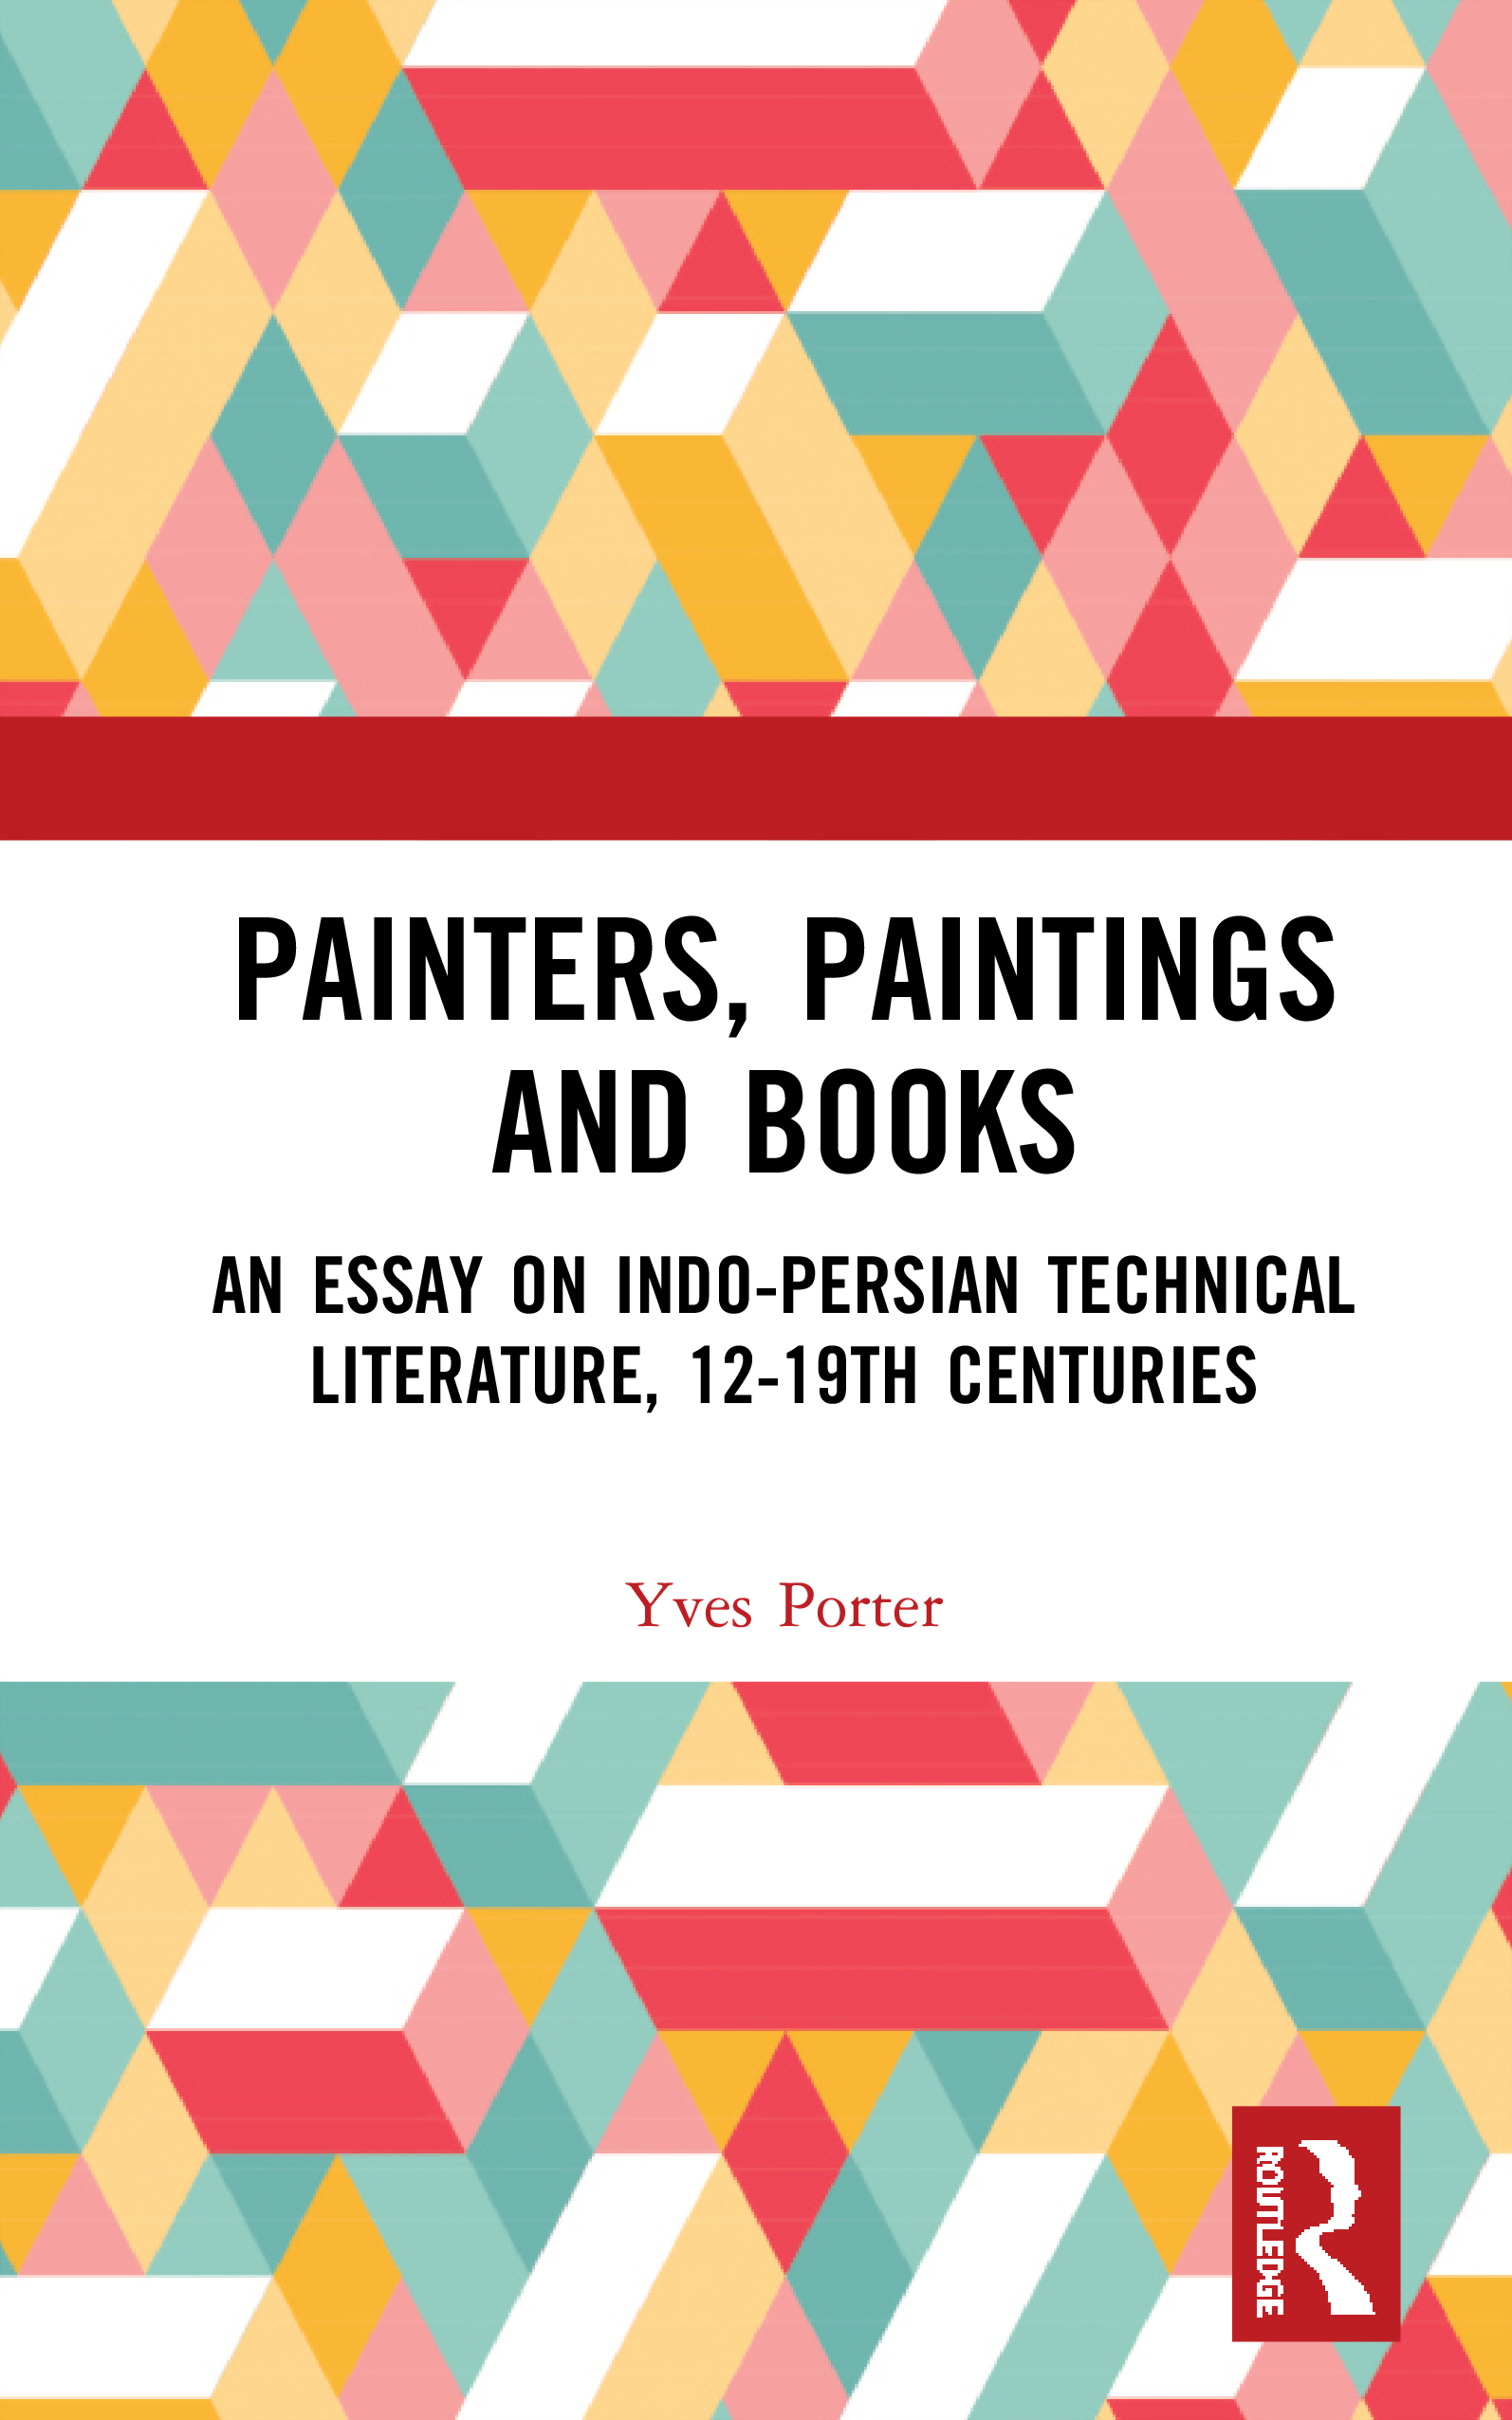 Painters, Paintings and Books: An Essay on Indo-Persian Technical Literature, 12-19th Centuries book cover